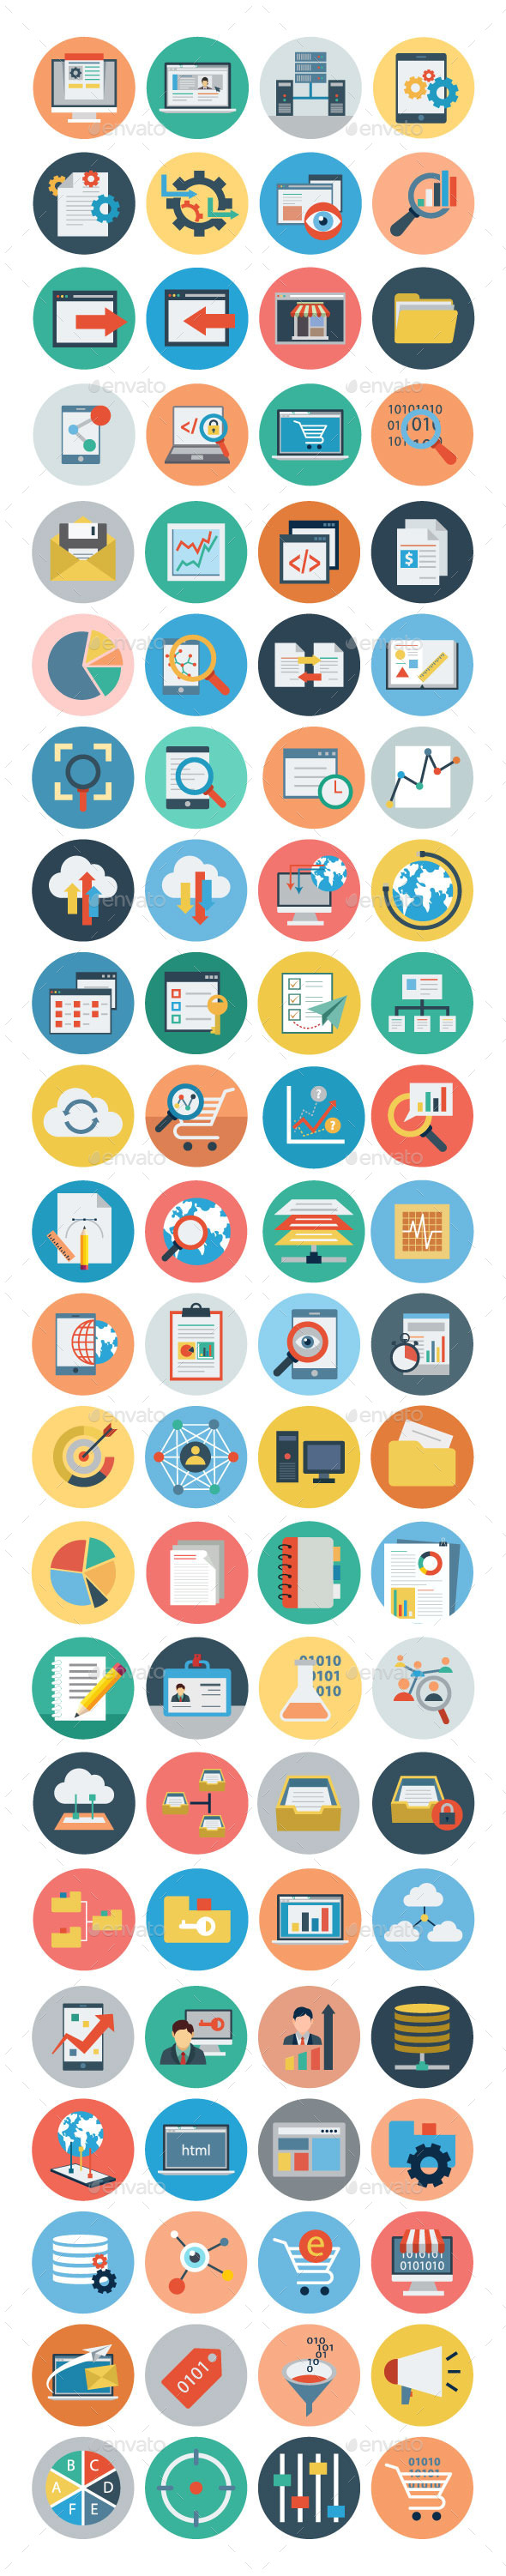 GraphicRiver 75& Flat Universal Web Icons 11298340